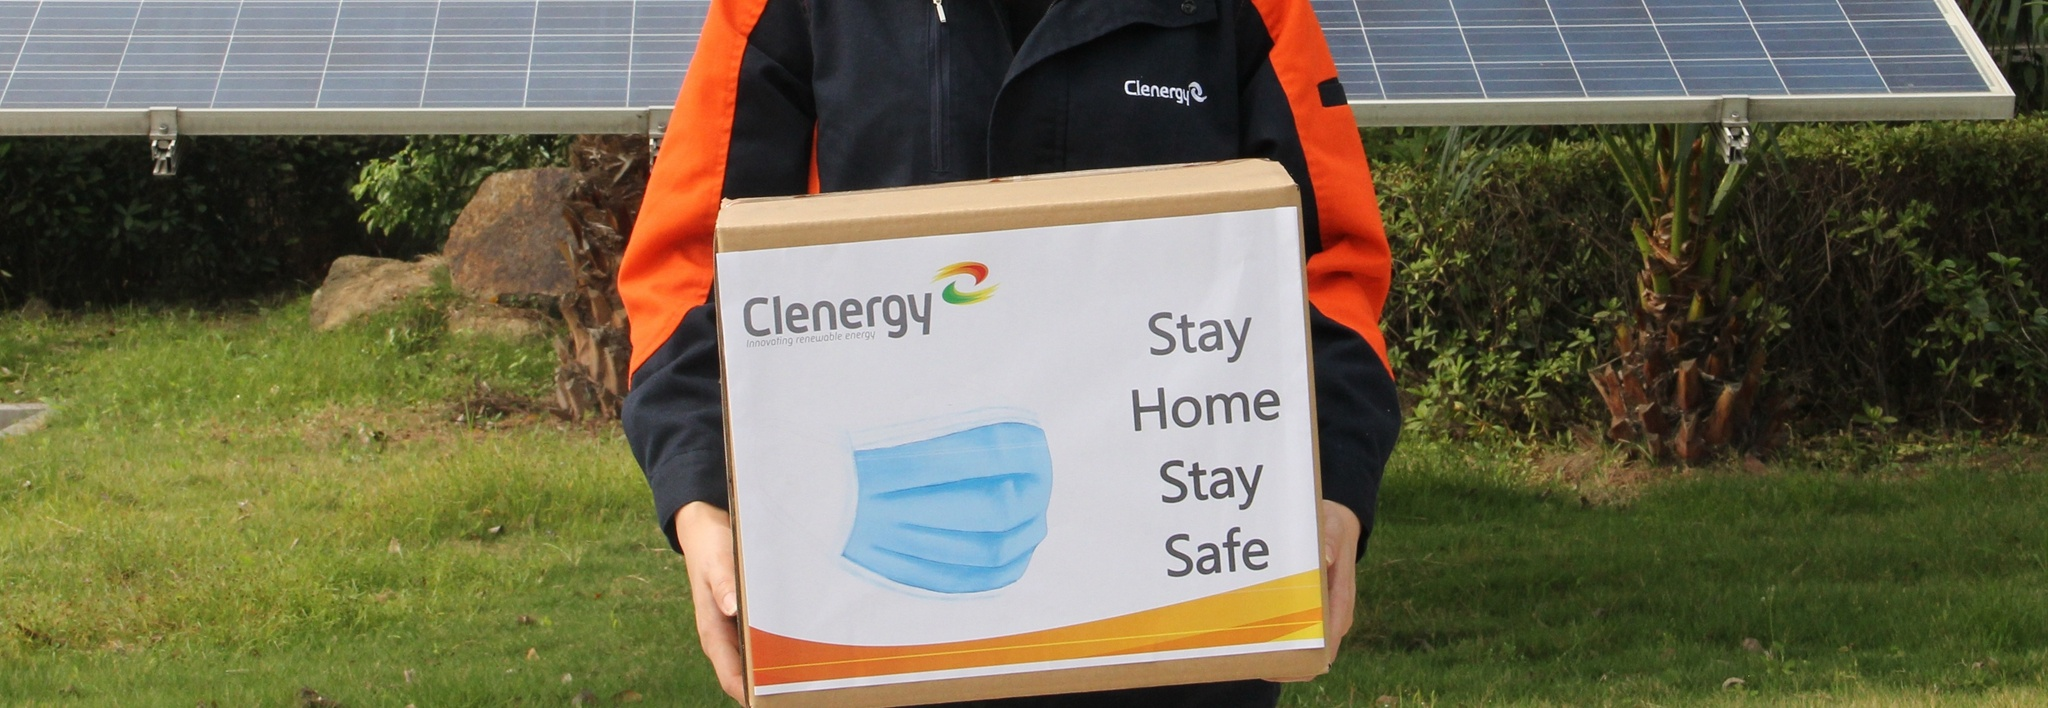 Clenergy Staff Holding a Box Full of Surgical Masks to be Donated in 2020